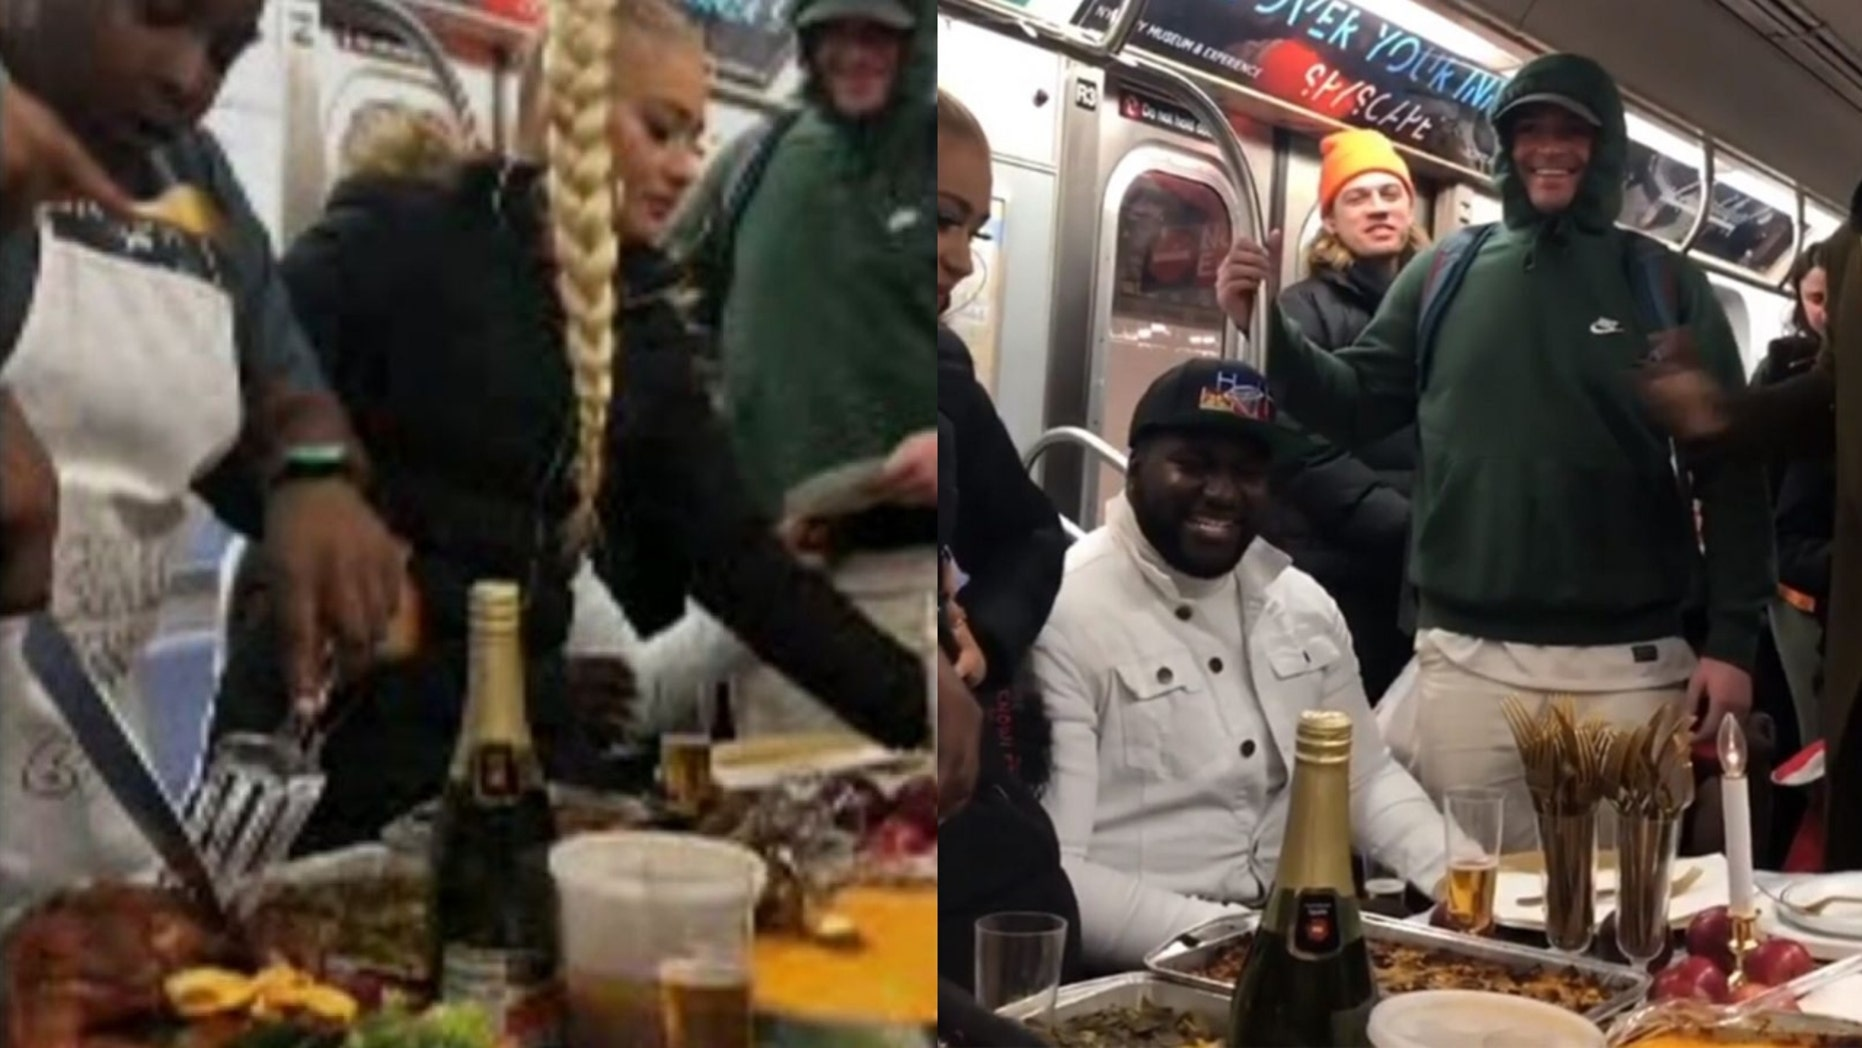 The chefs behind the now-viral video of a group of New Yorkers serving a full Thanksgiving meal on the subway opened up about its inspiration. (@flanneryfoster via Storyful)